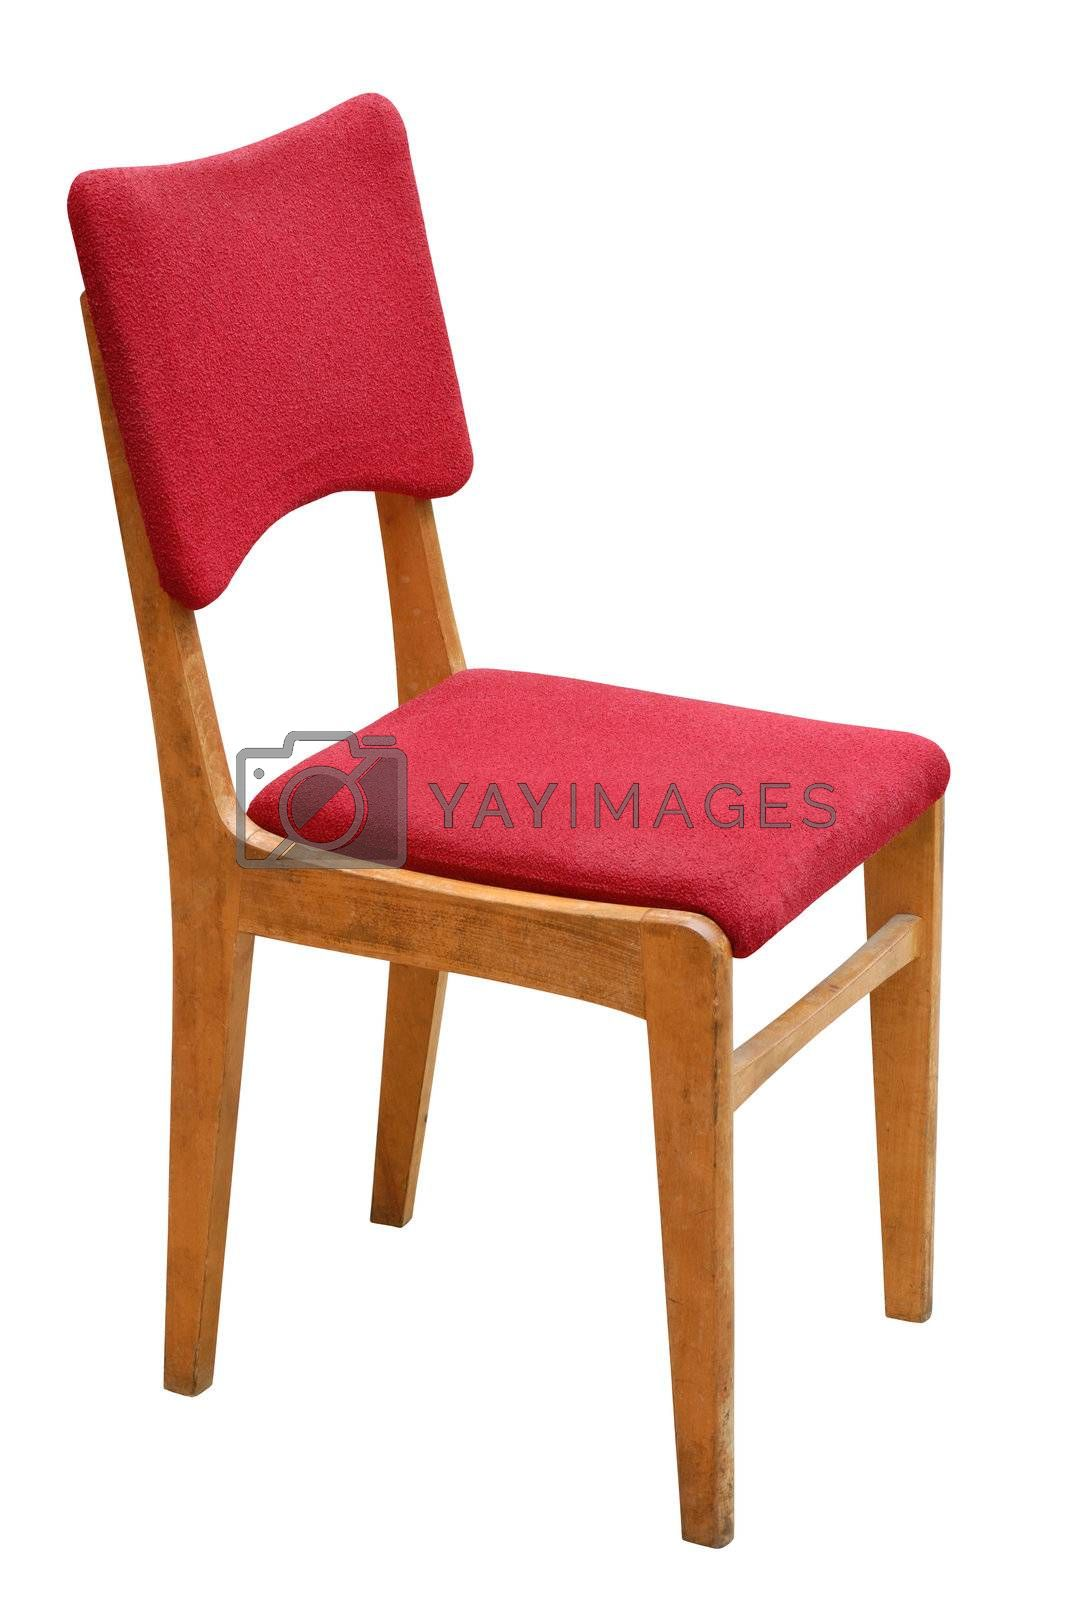 Old red chair isolated on white background